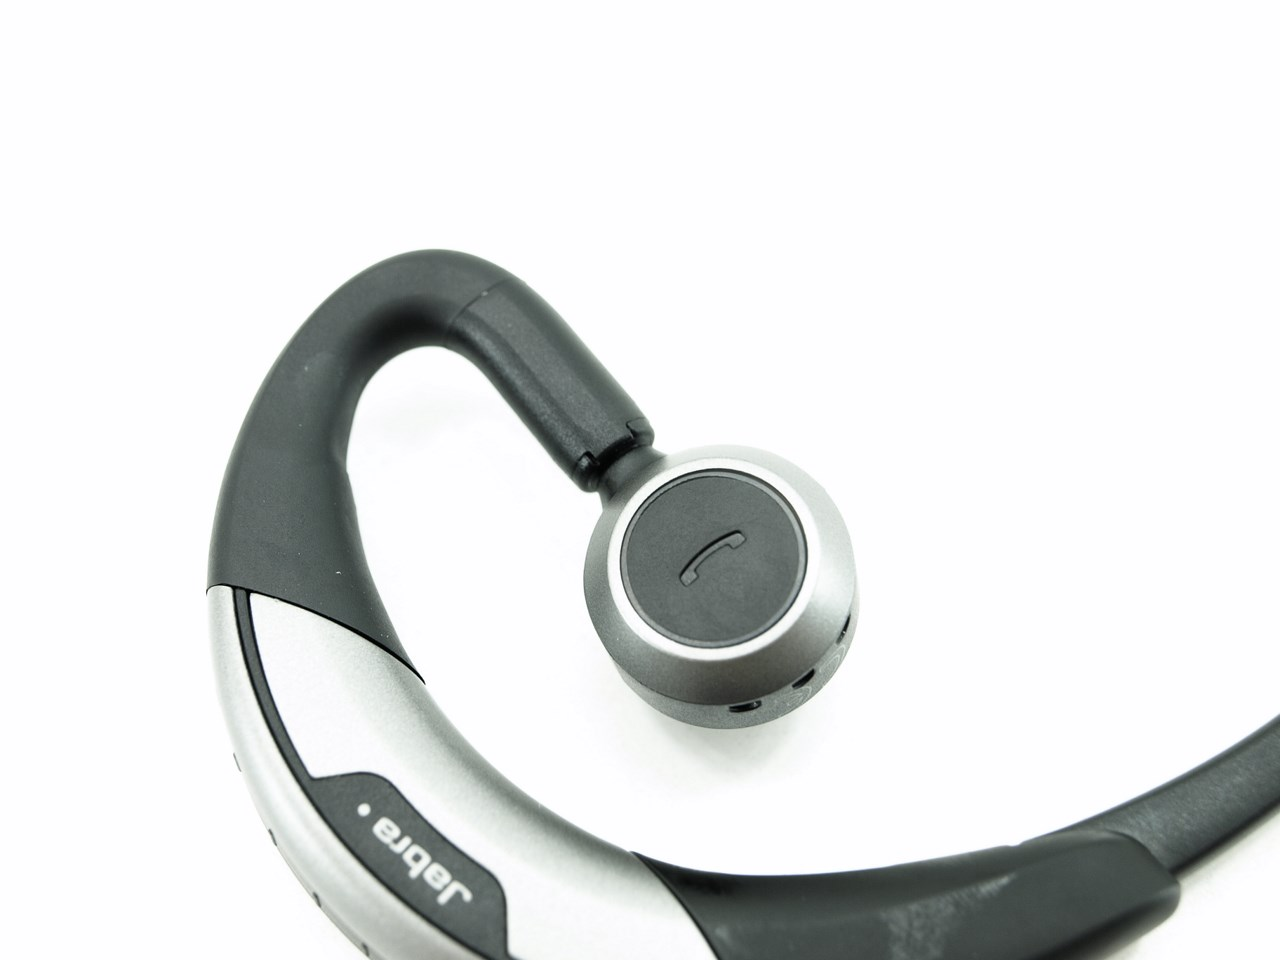 jabra motion bluetooth headset review. Black Bedroom Furniture Sets. Home Design Ideas